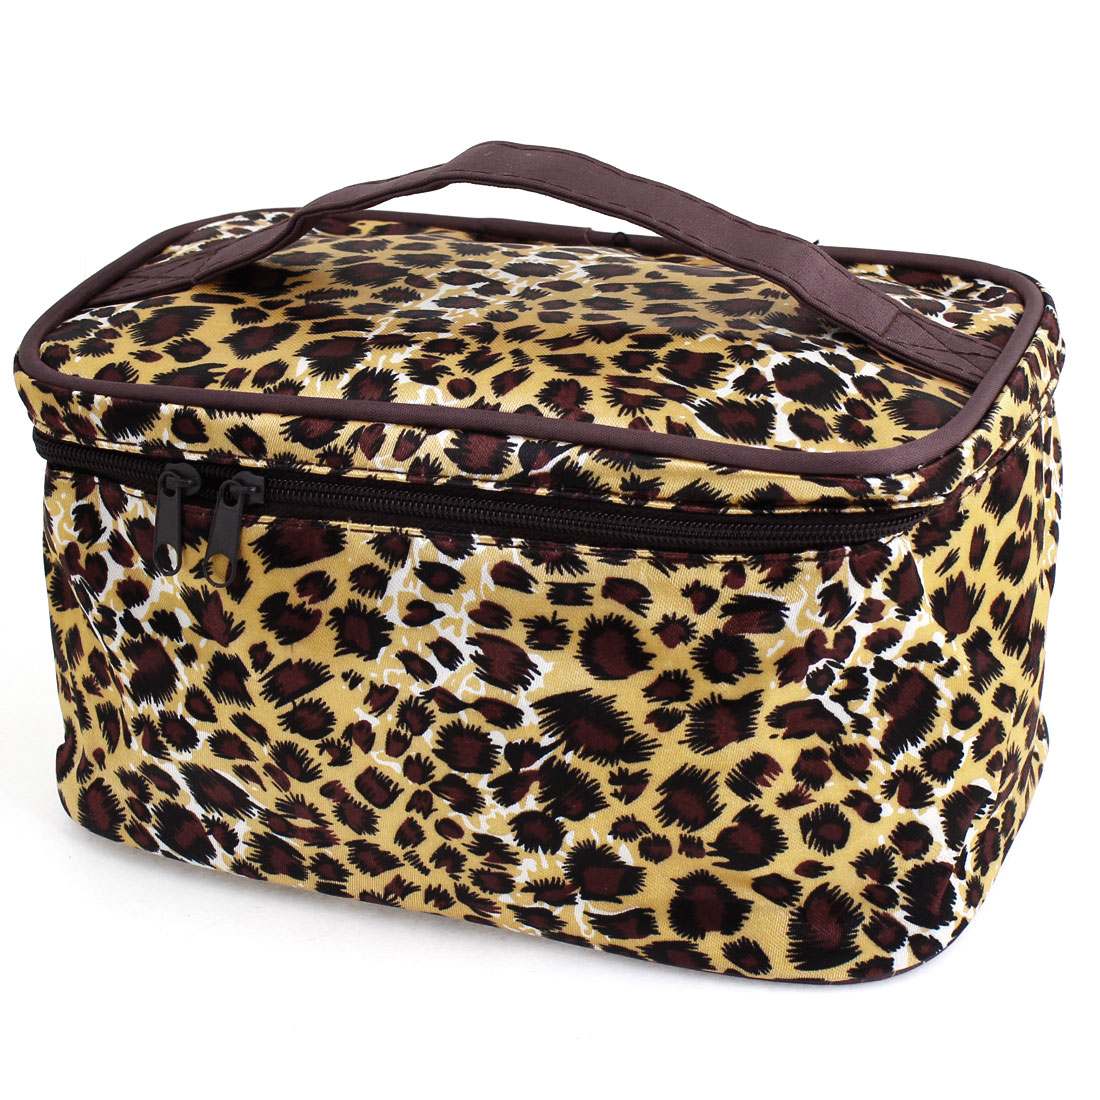 Ladies Zippered Leopard Prints Cosmetic Hand Bag Case Pouch Brown Beige